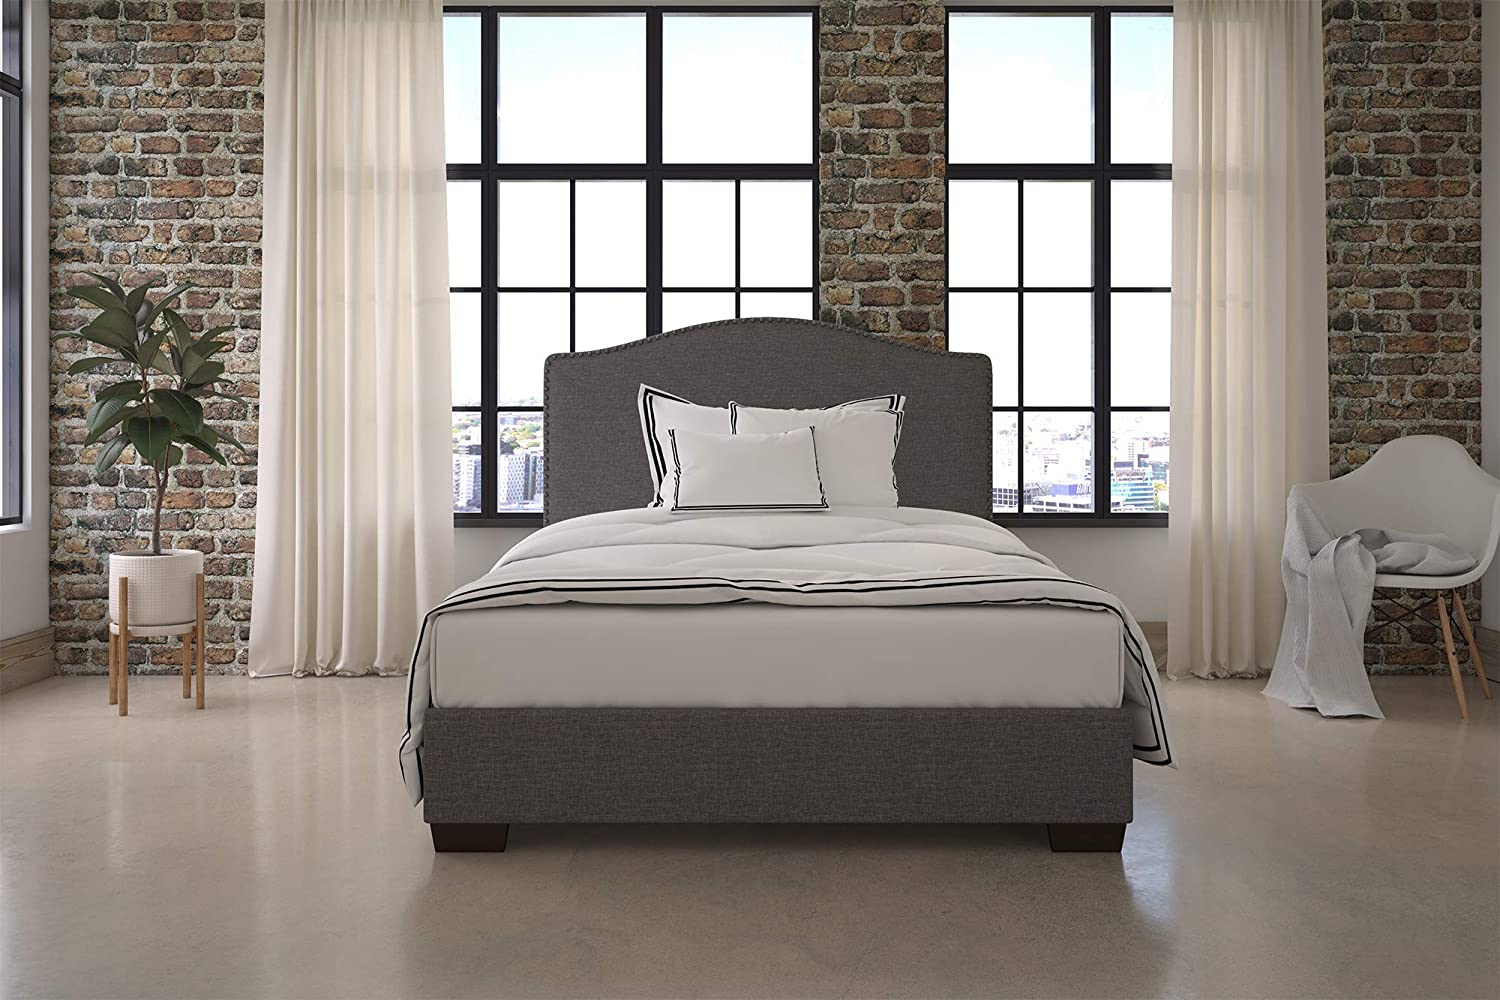 DHP Gavin Upholstered Bed with Nailhead Trim and Wood Slat Support System, Queen Size, Grey Linen